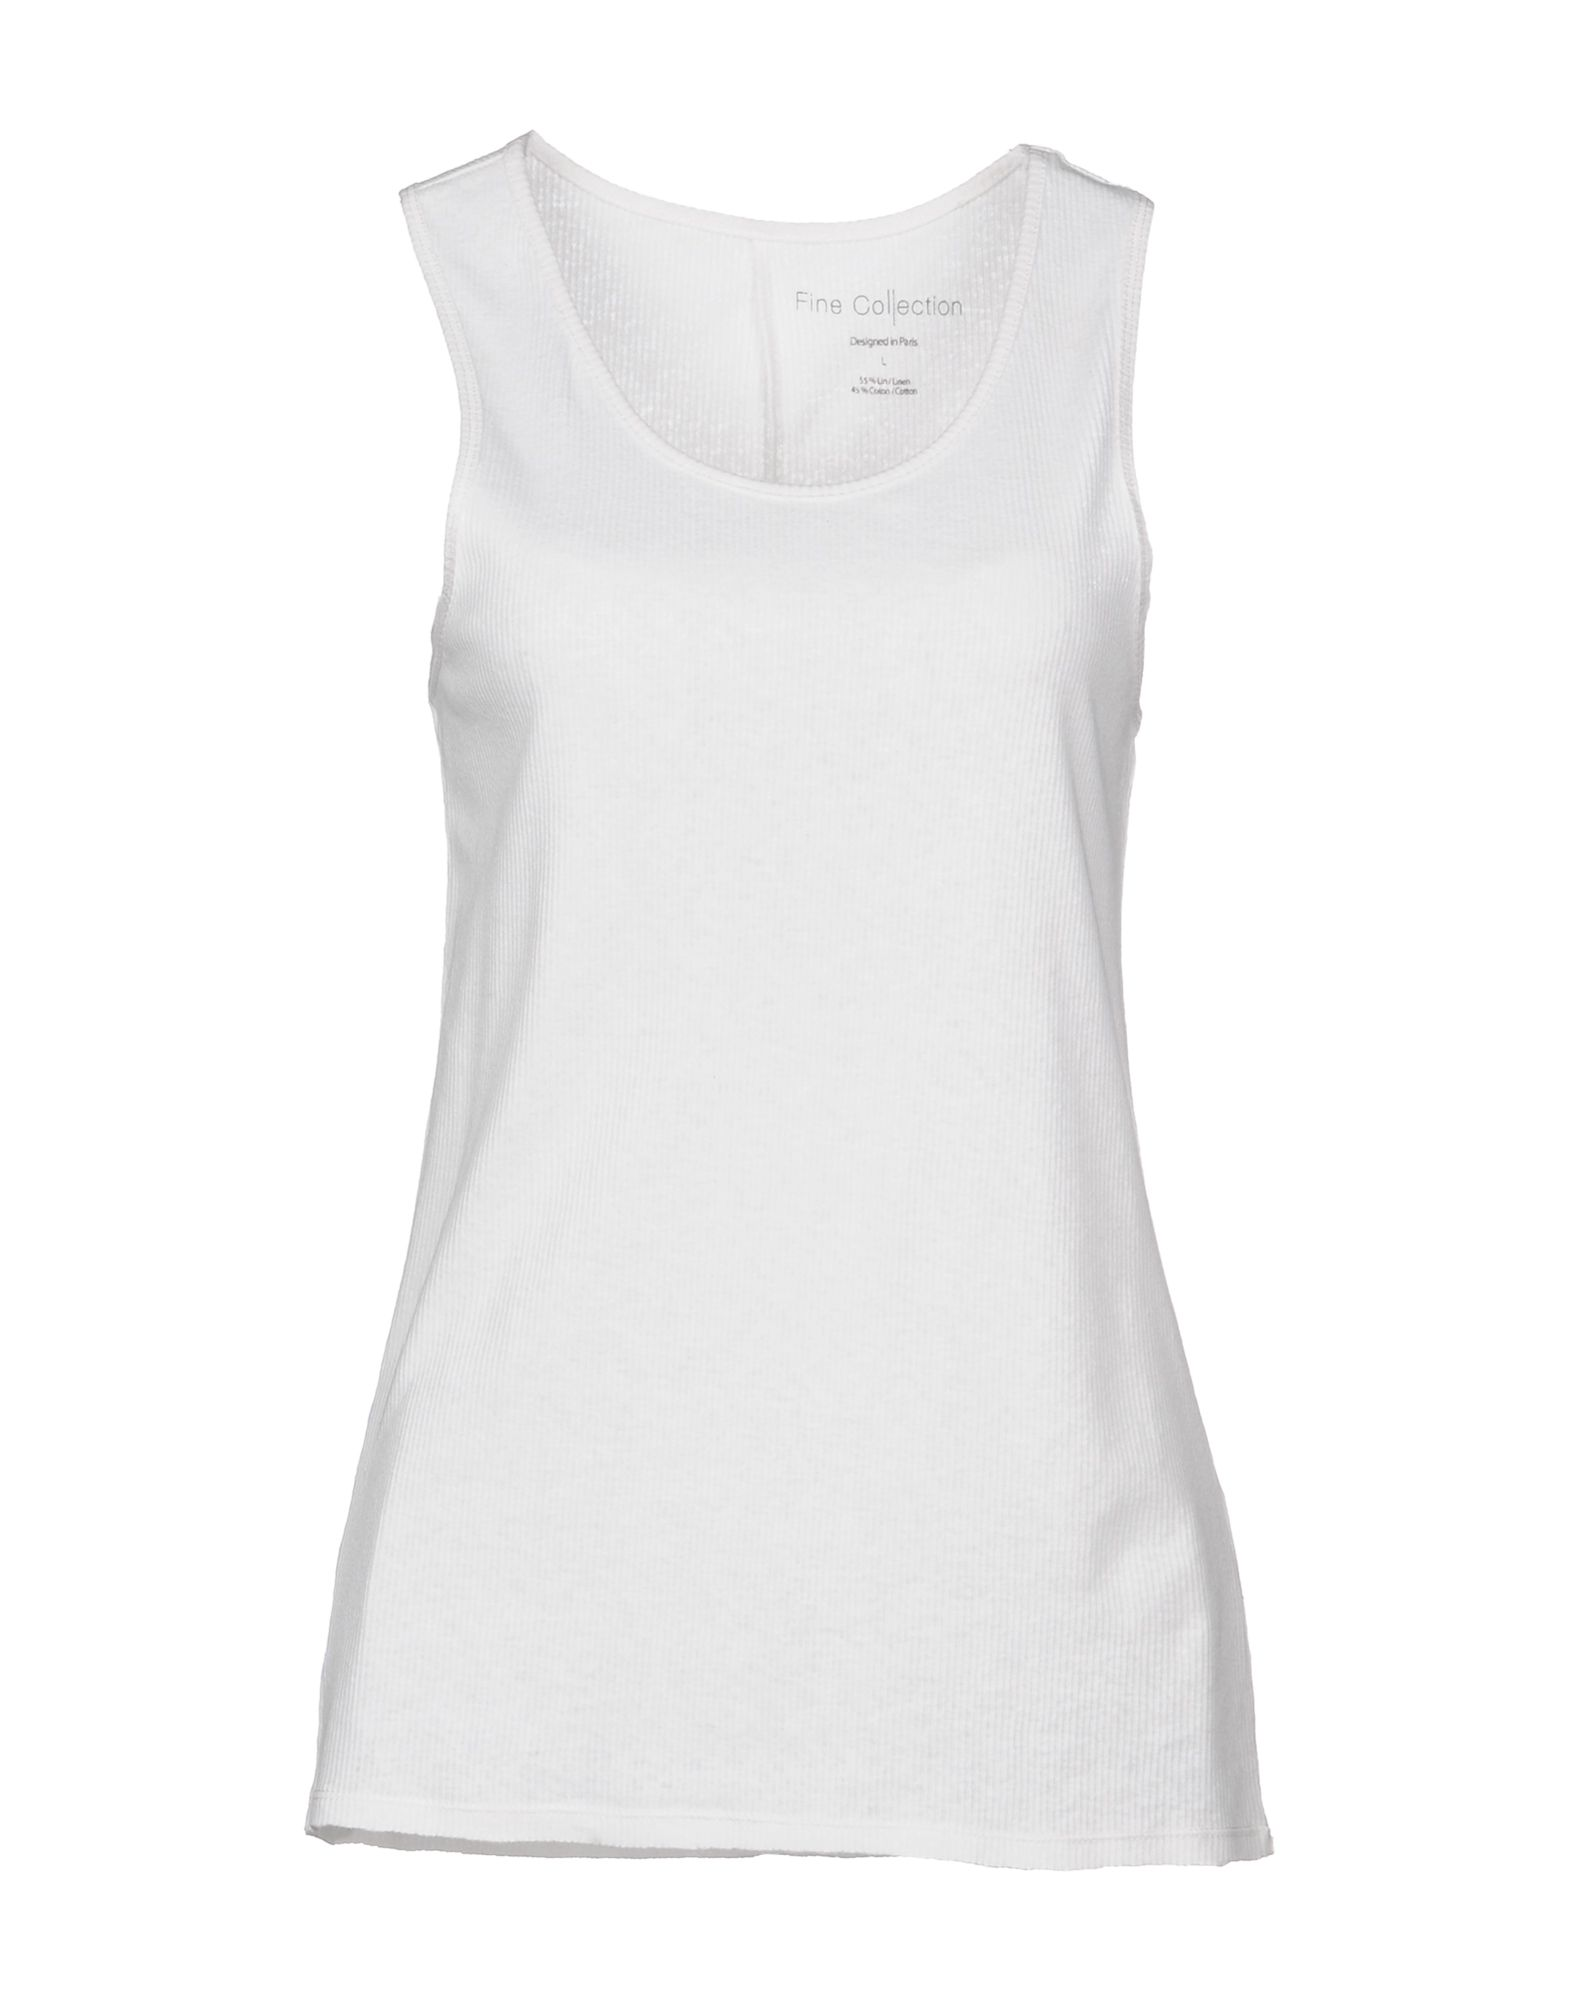 FINE COLLECTION Tank Top in White